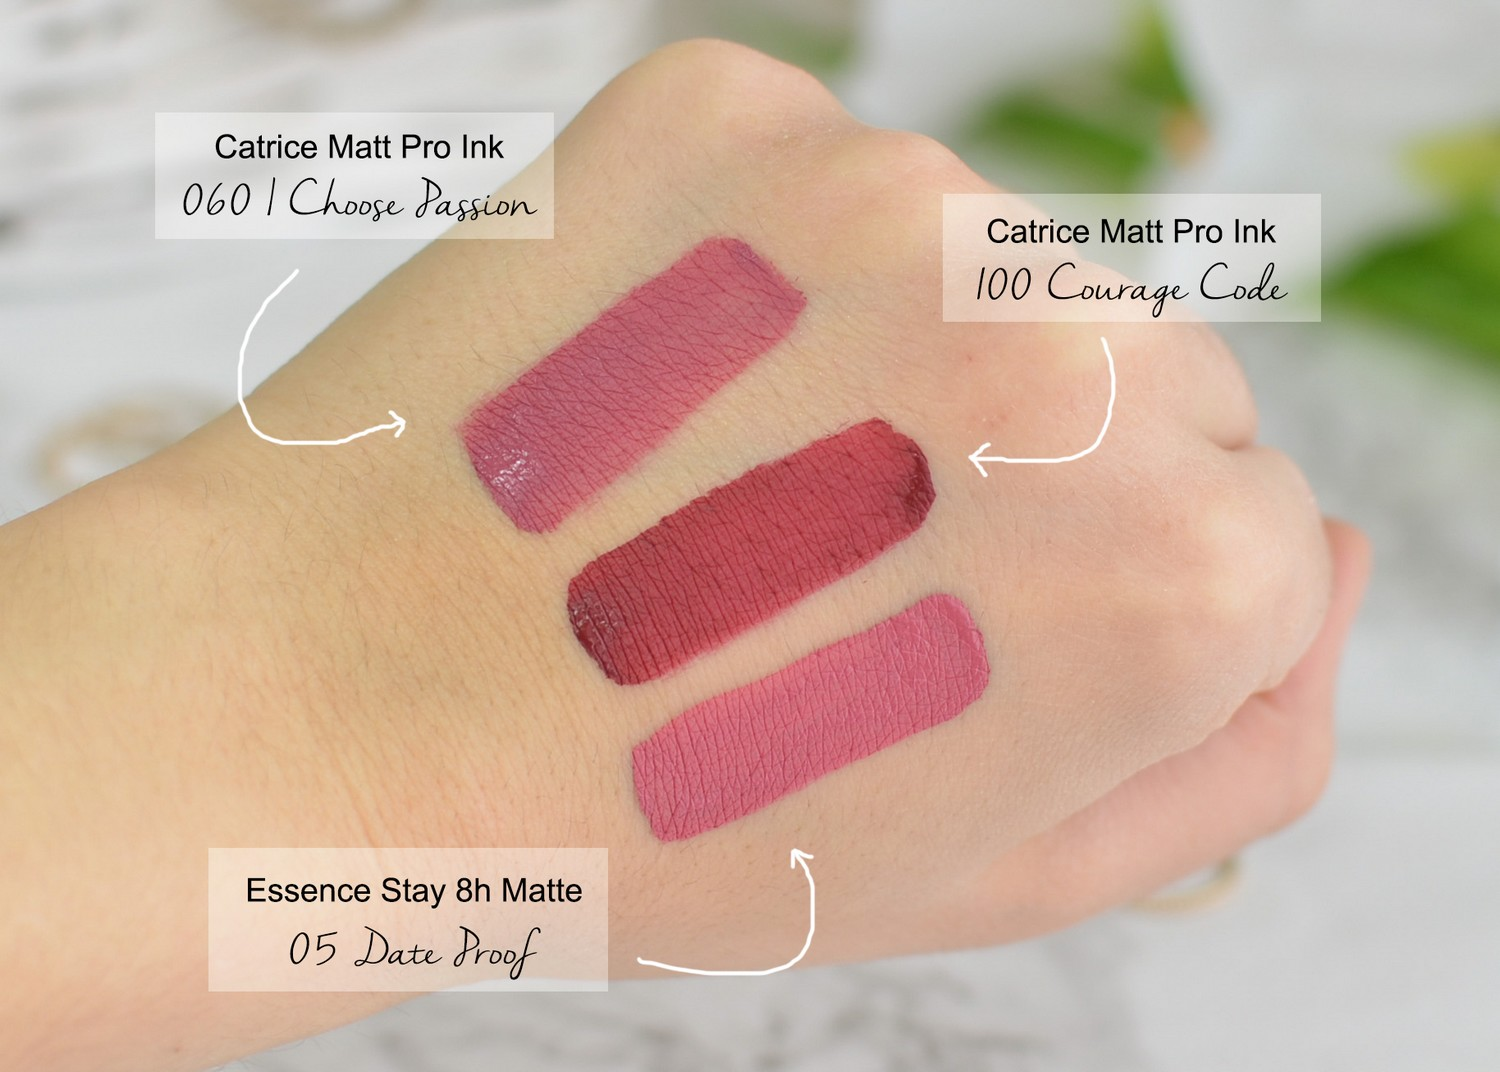 Catrice Catrice Matt Pro Ink Liquid Lipstick 060 I Choose Poison and 100 Courage Code